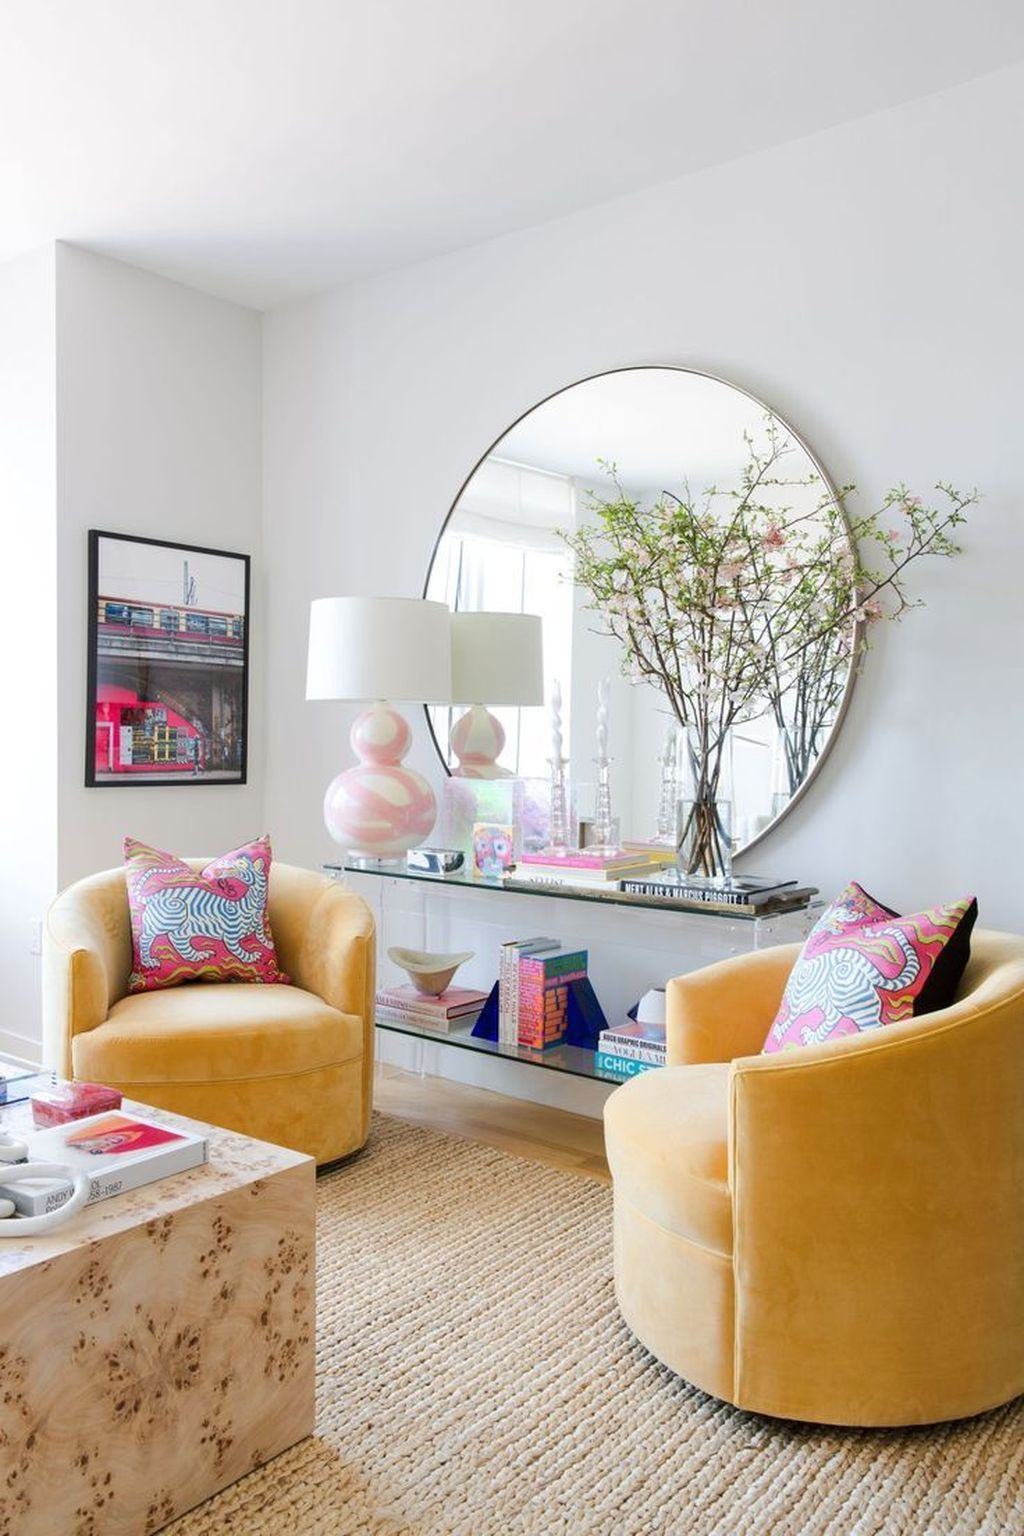 33 Lovely Colorful Living Room Ideas In 2020 Colourful Living